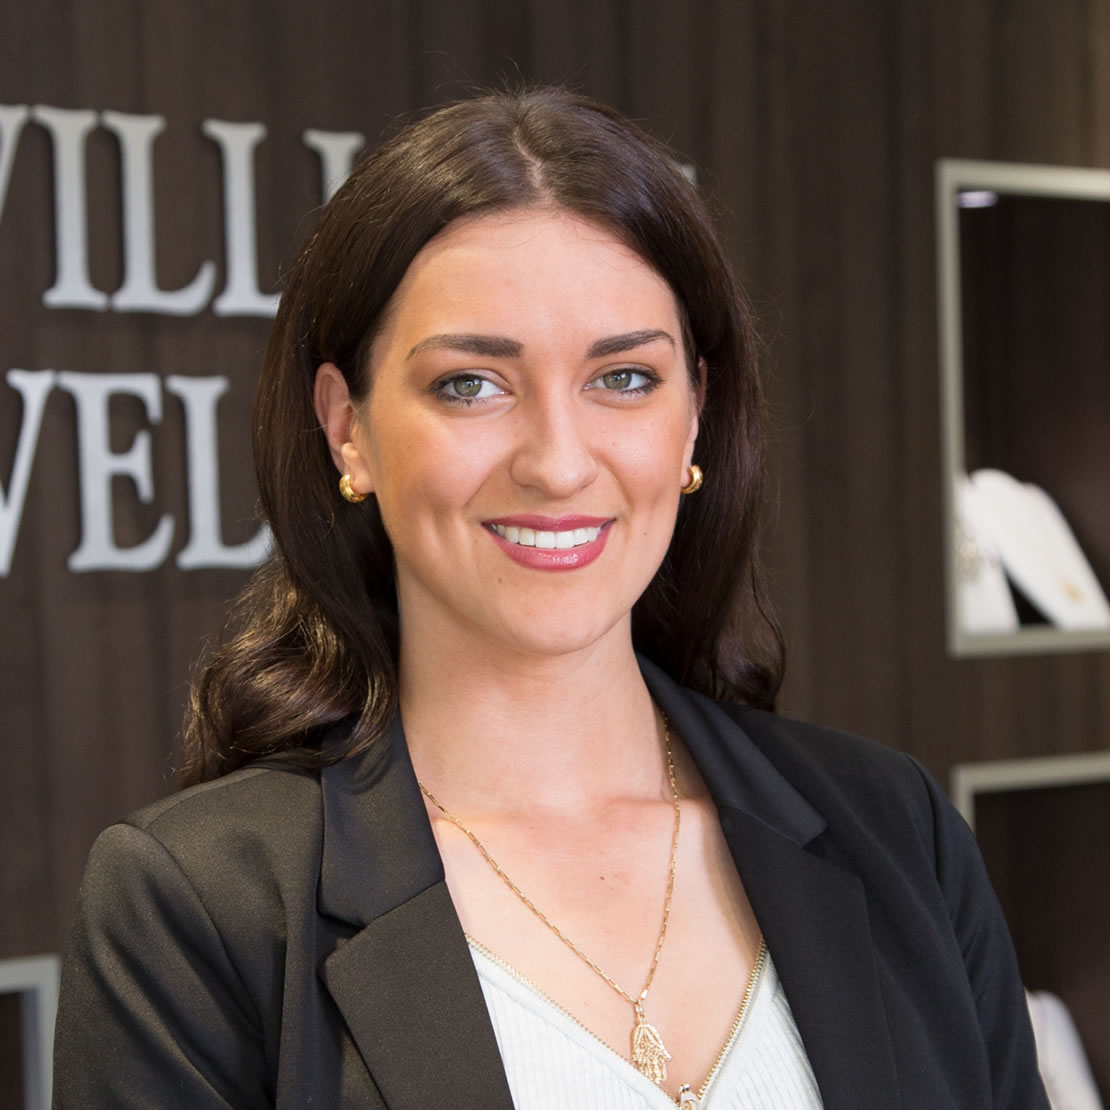 Julie at H. Williams Jewellery